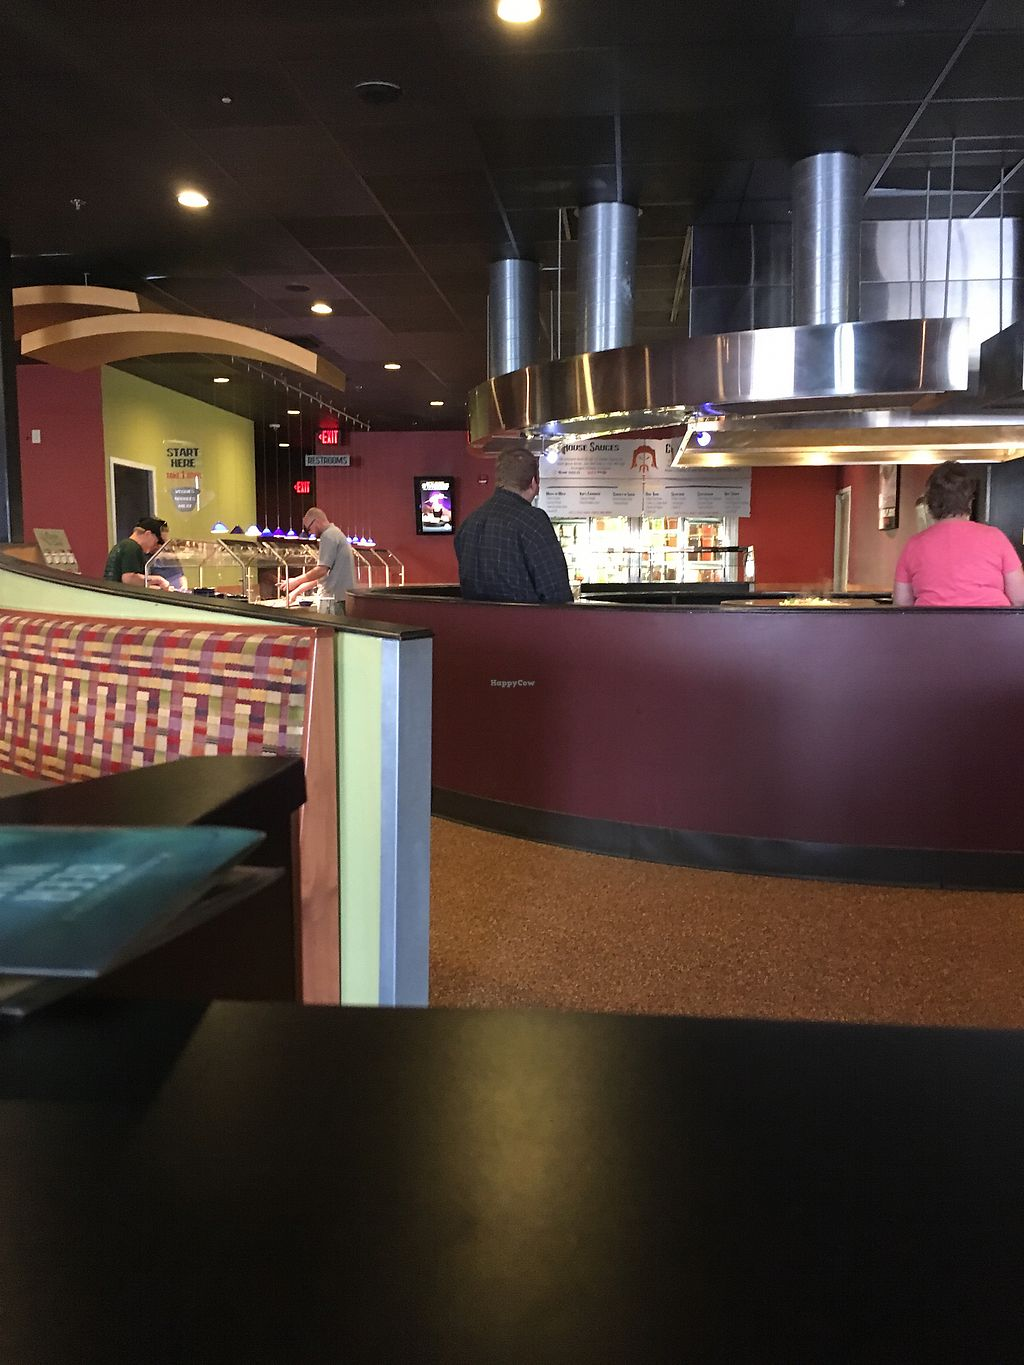 """Photo of HuHot Mongolian Grill  by <a href=""""/members/profile/nardanddee"""">nardanddee</a> <br/>Interior <br/> October 4, 2017  - <a href='/contact/abuse/image/97103/311754'>Report</a>"""